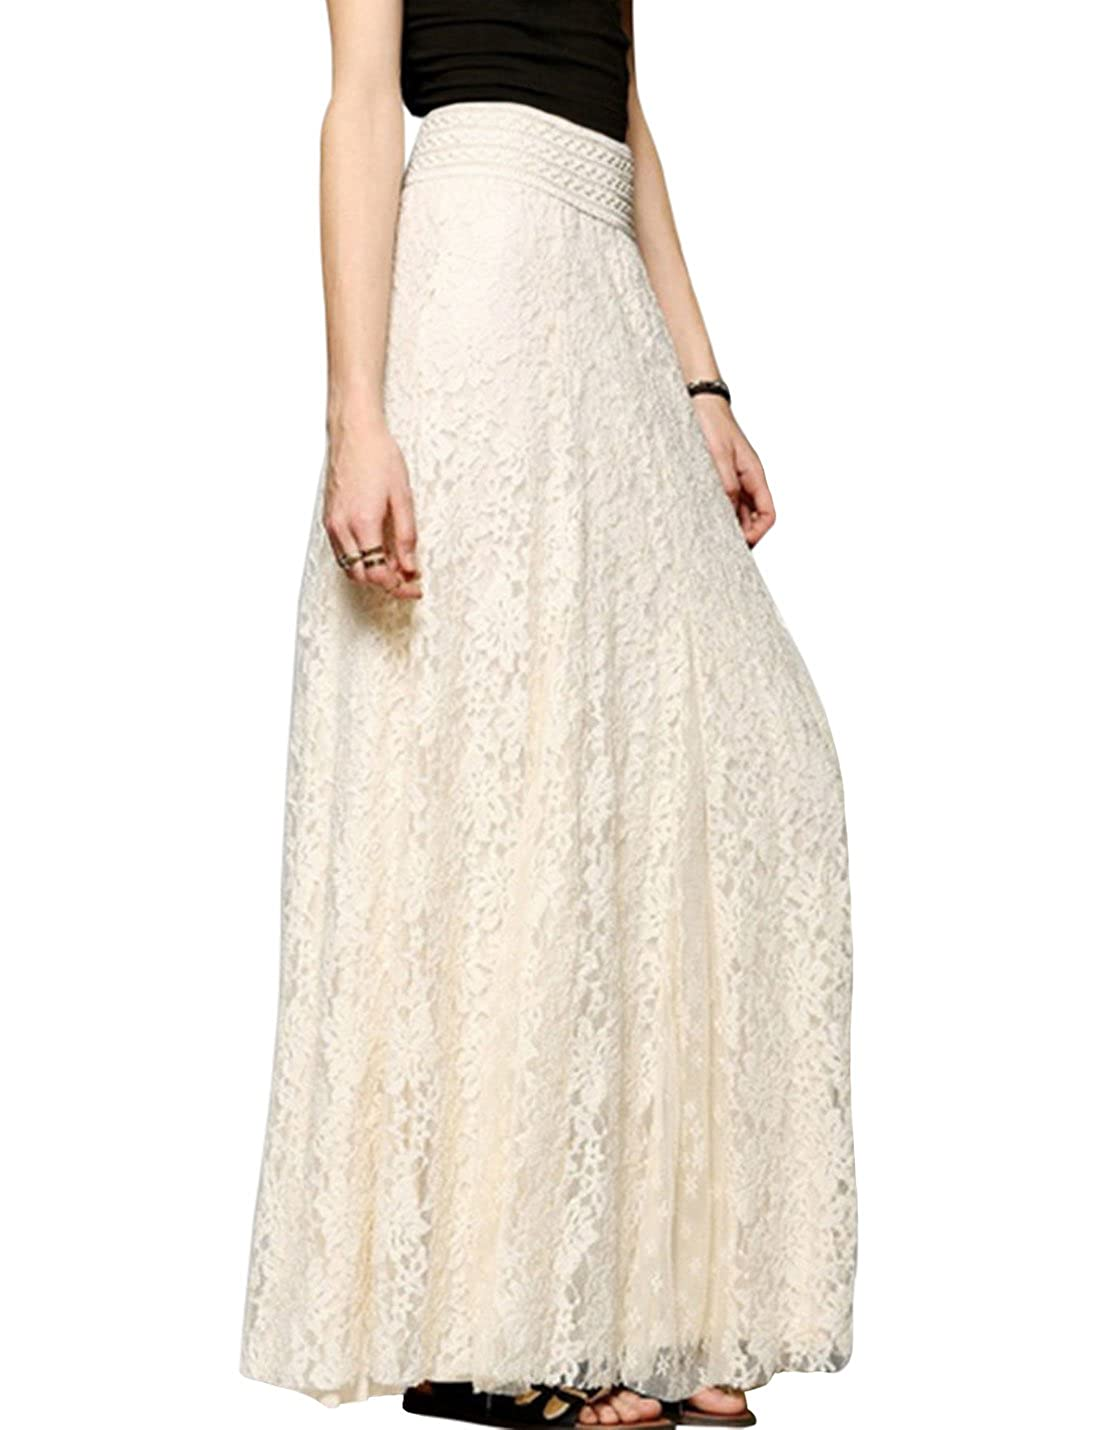 Tanming Womens High Waist A Line Maxi Lace Skirt At Amazon Lovly Sqaa Clothing Store